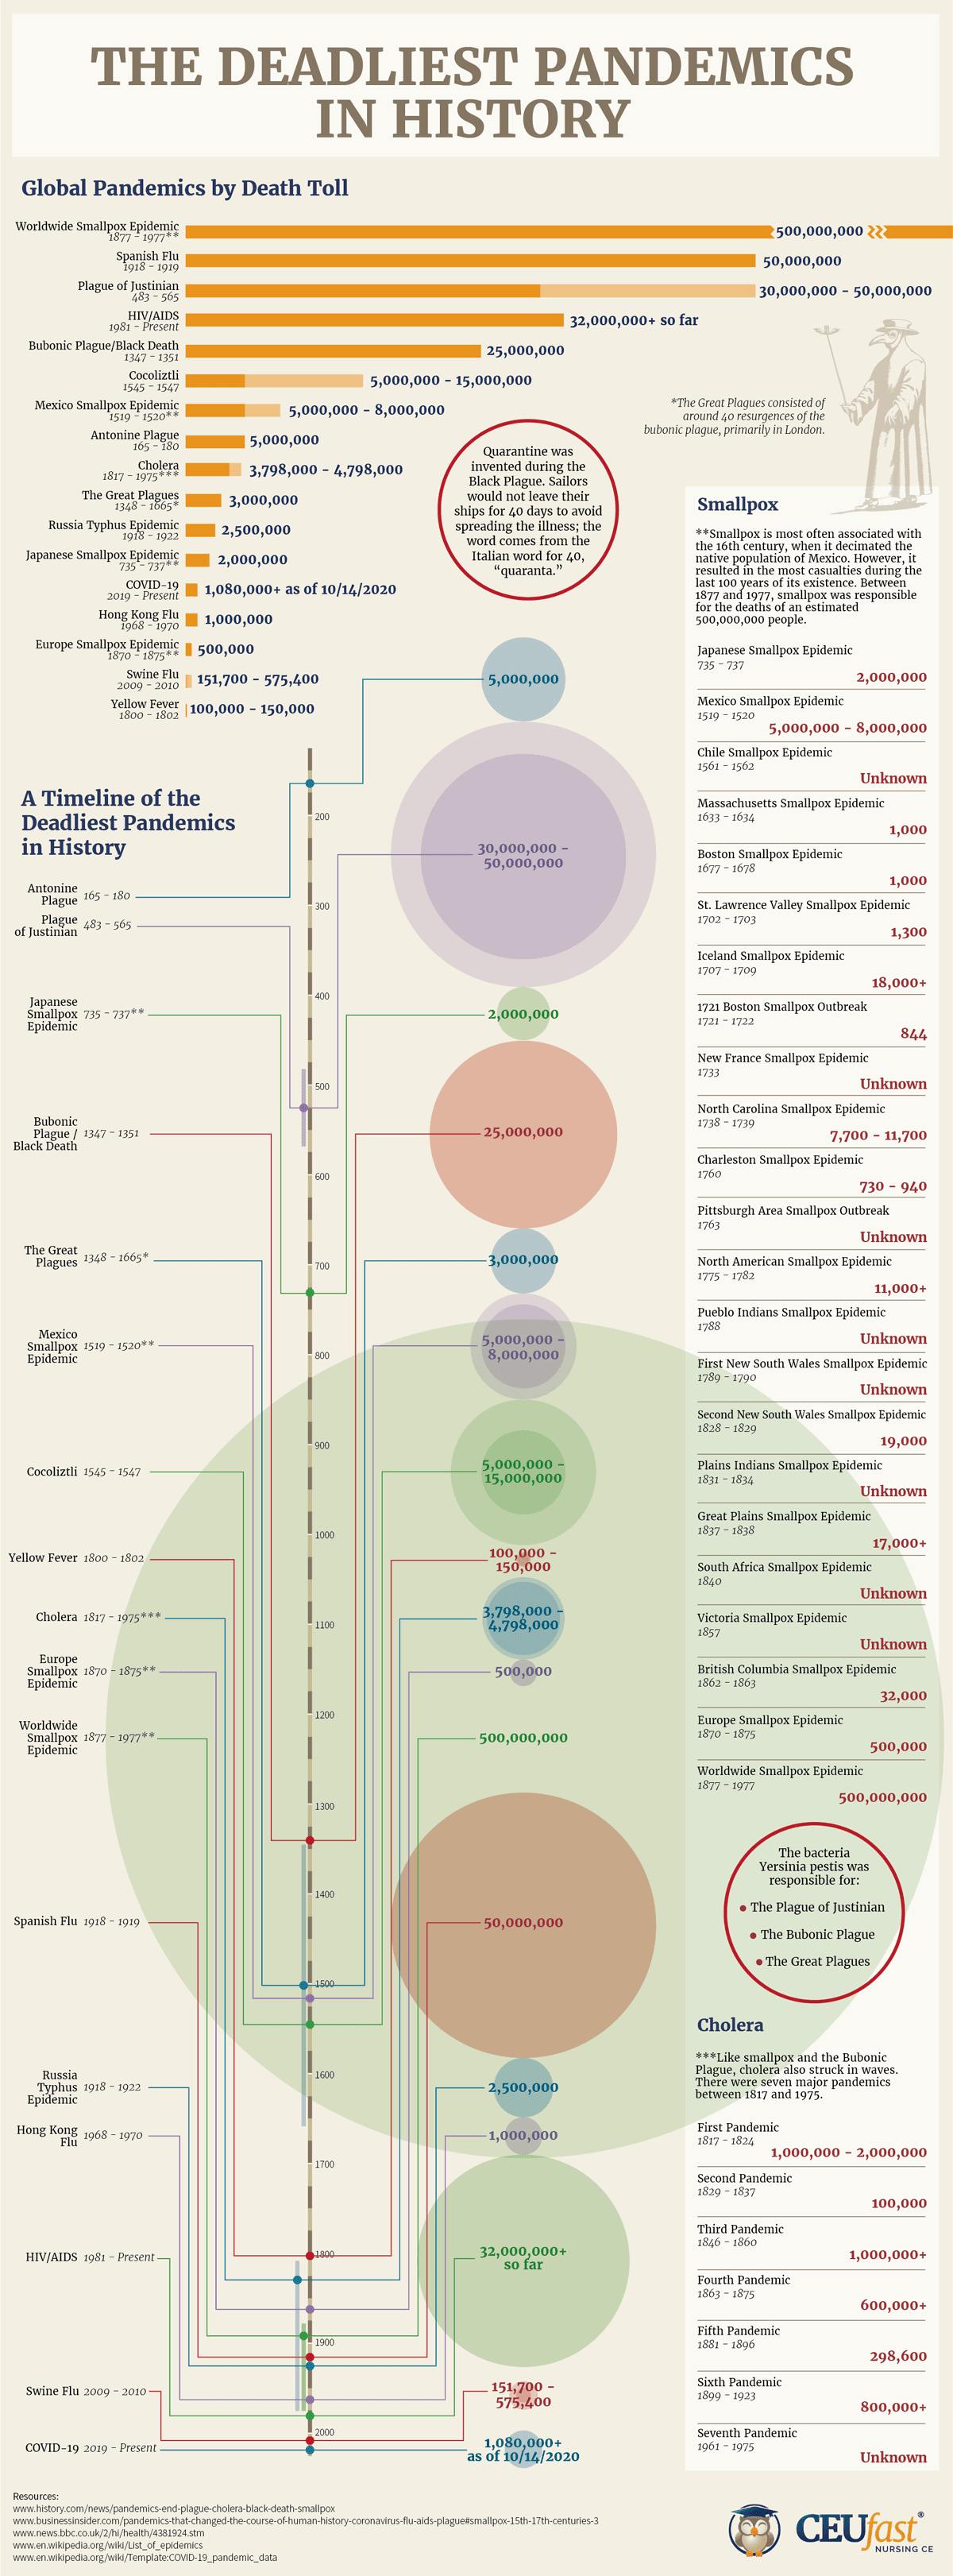 The Deadliest Pandemics in History #infographic